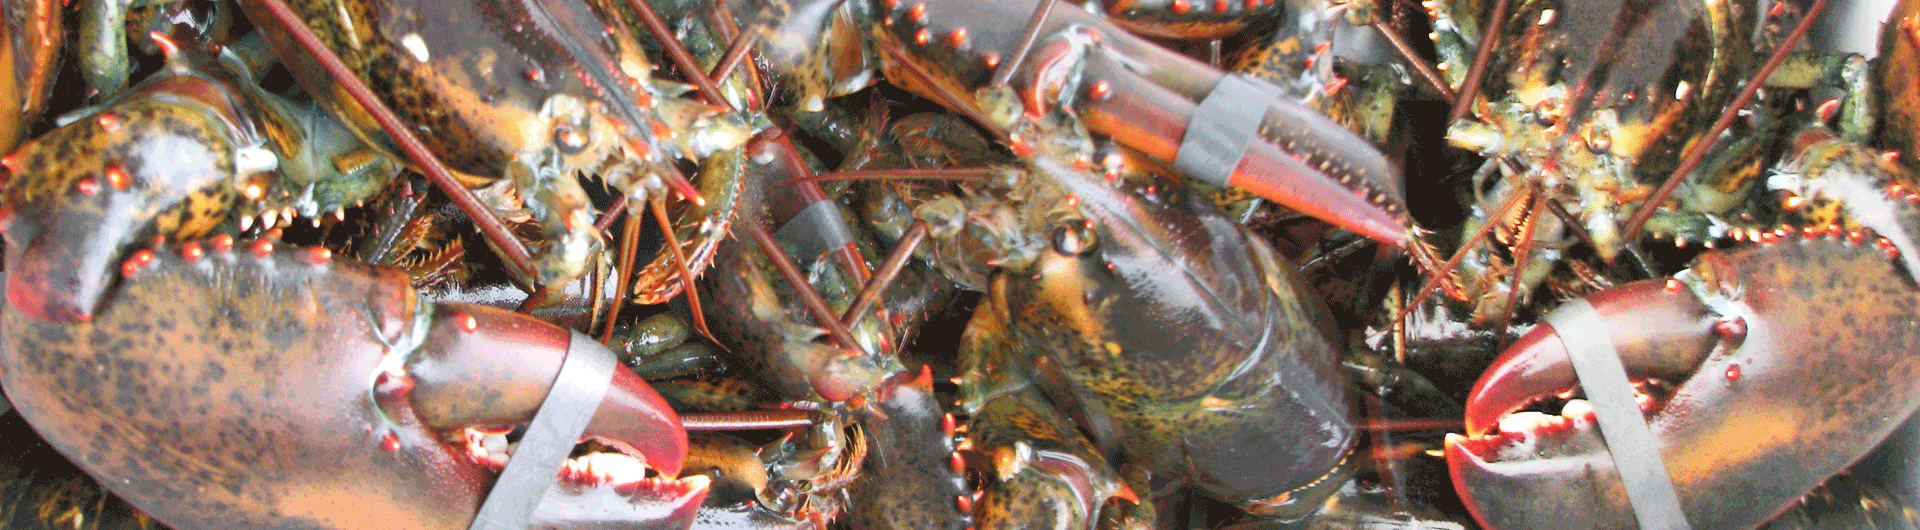 Coldwater Seafood Market Smokehouse Fresh Seafood Lobsters Smoked Mussels